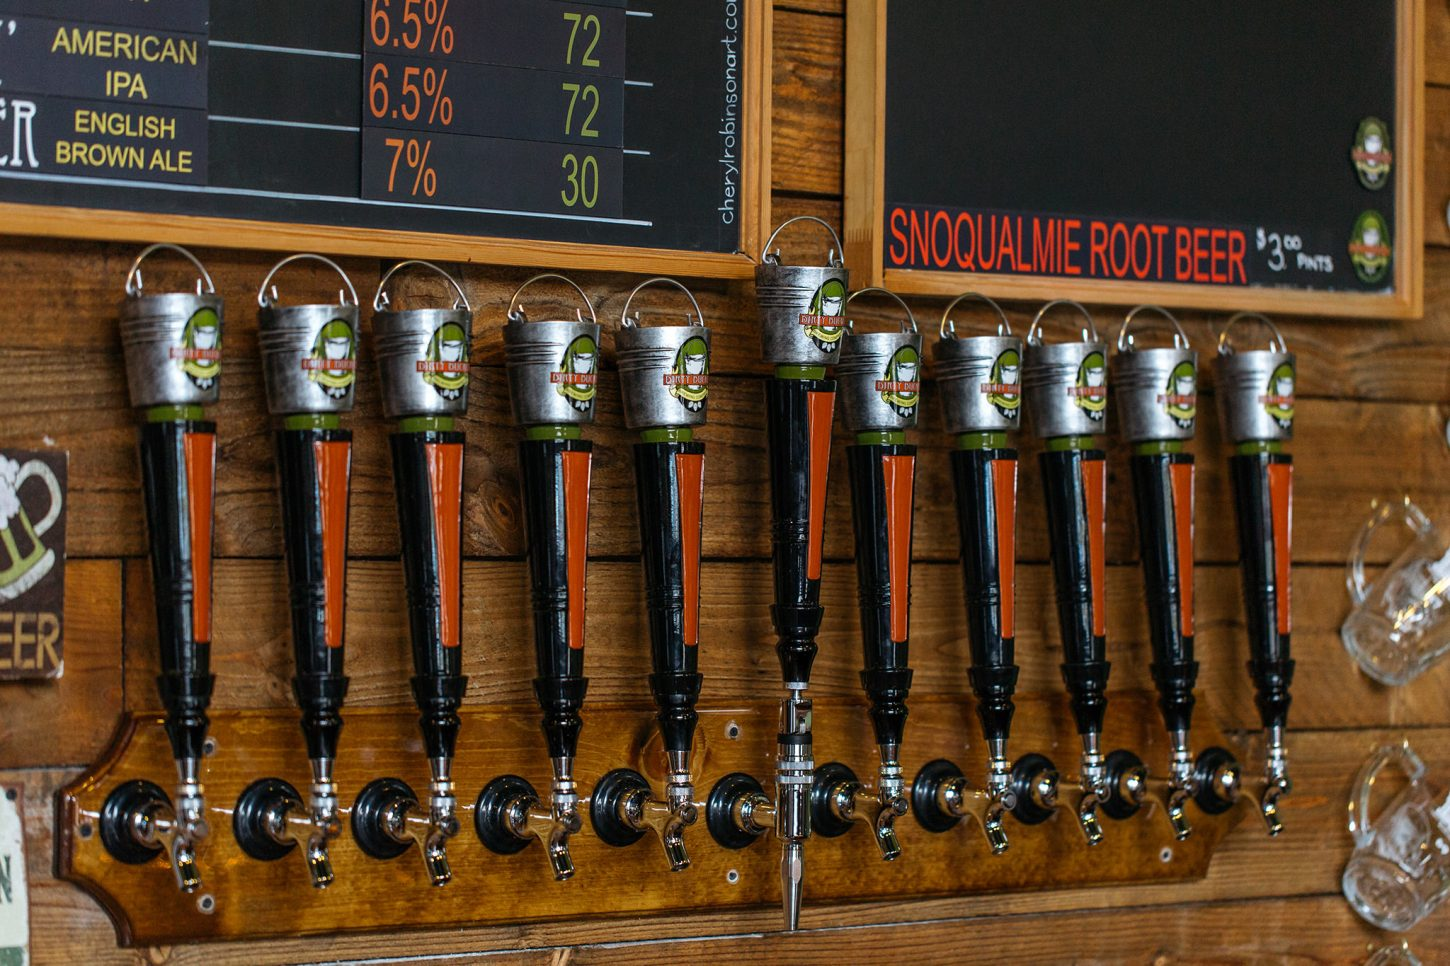 Brewery tap handles